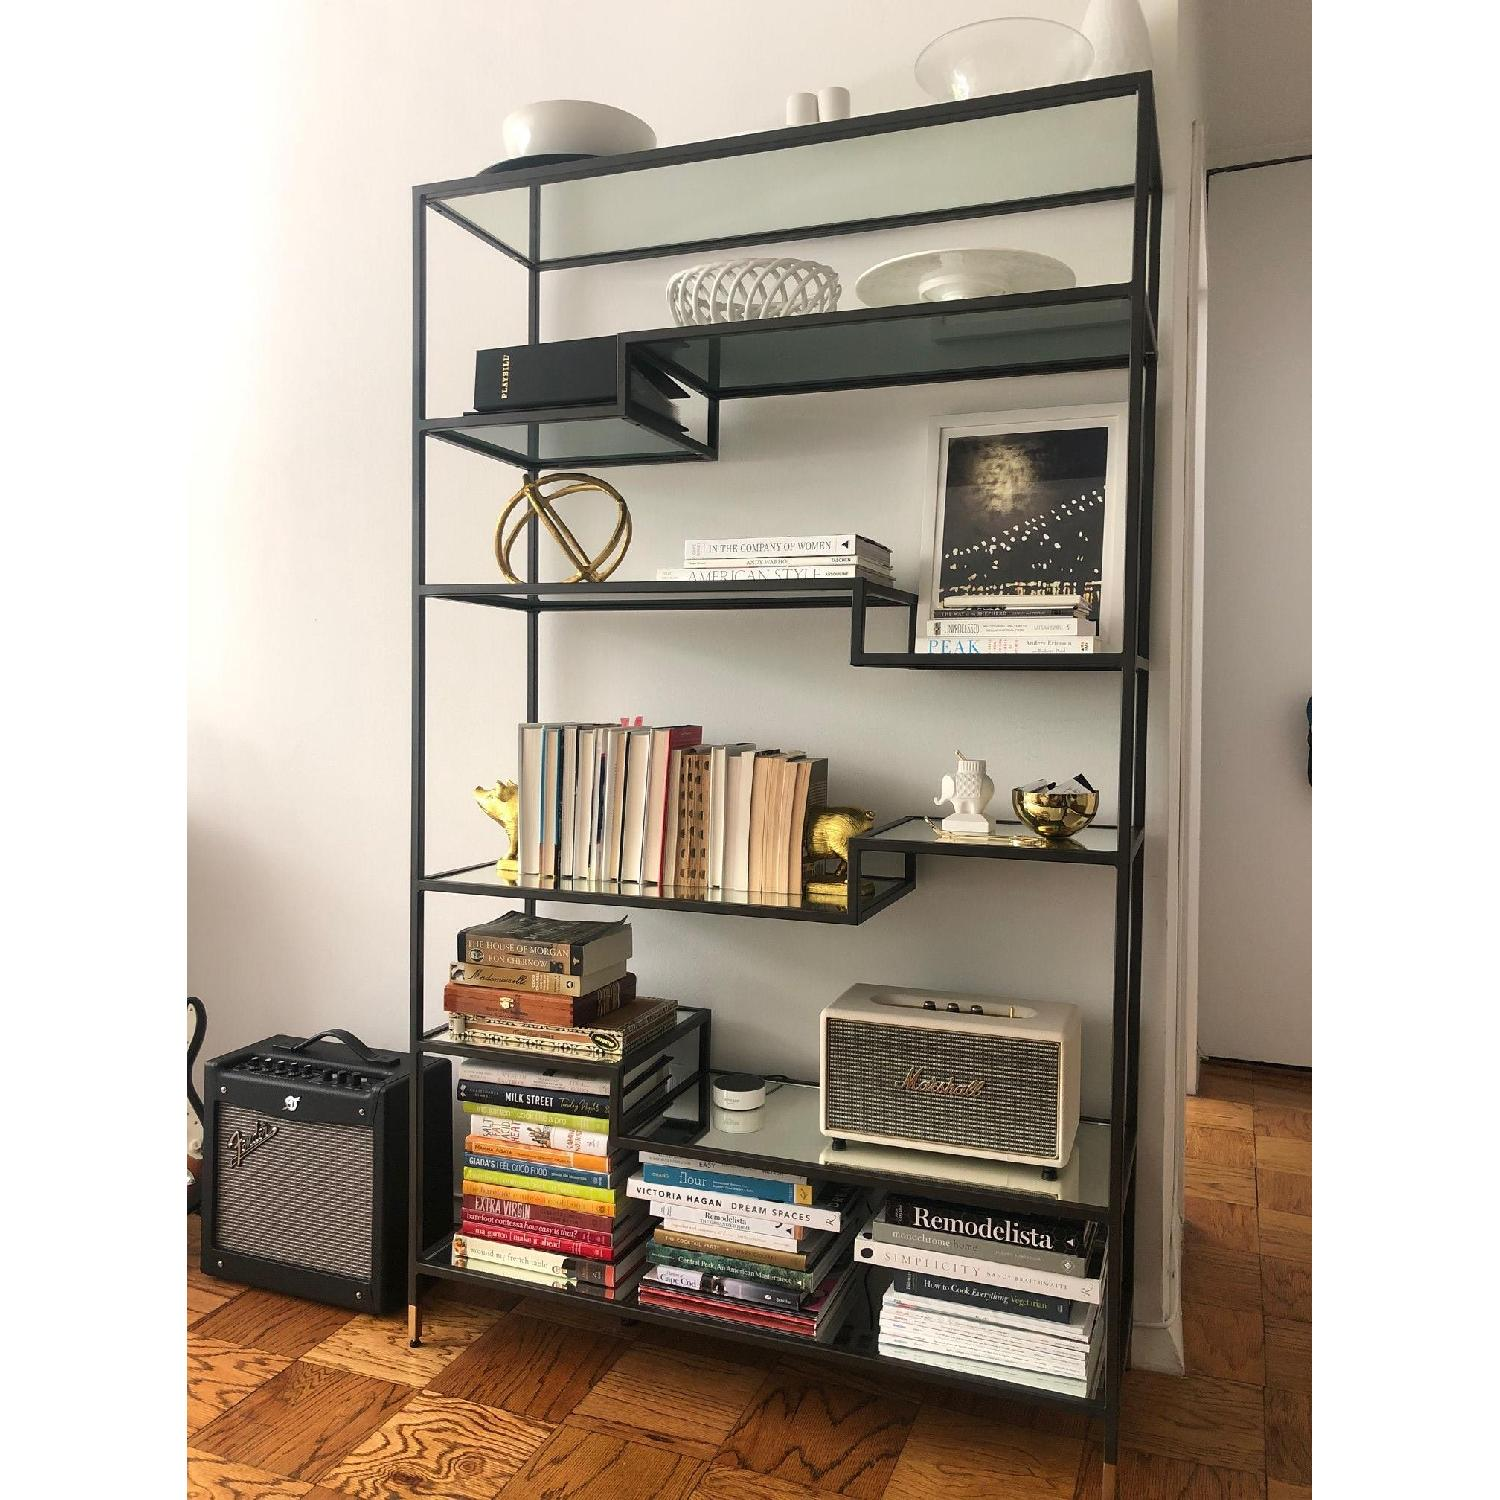 West Elm Tiered Tower Bookcase-2